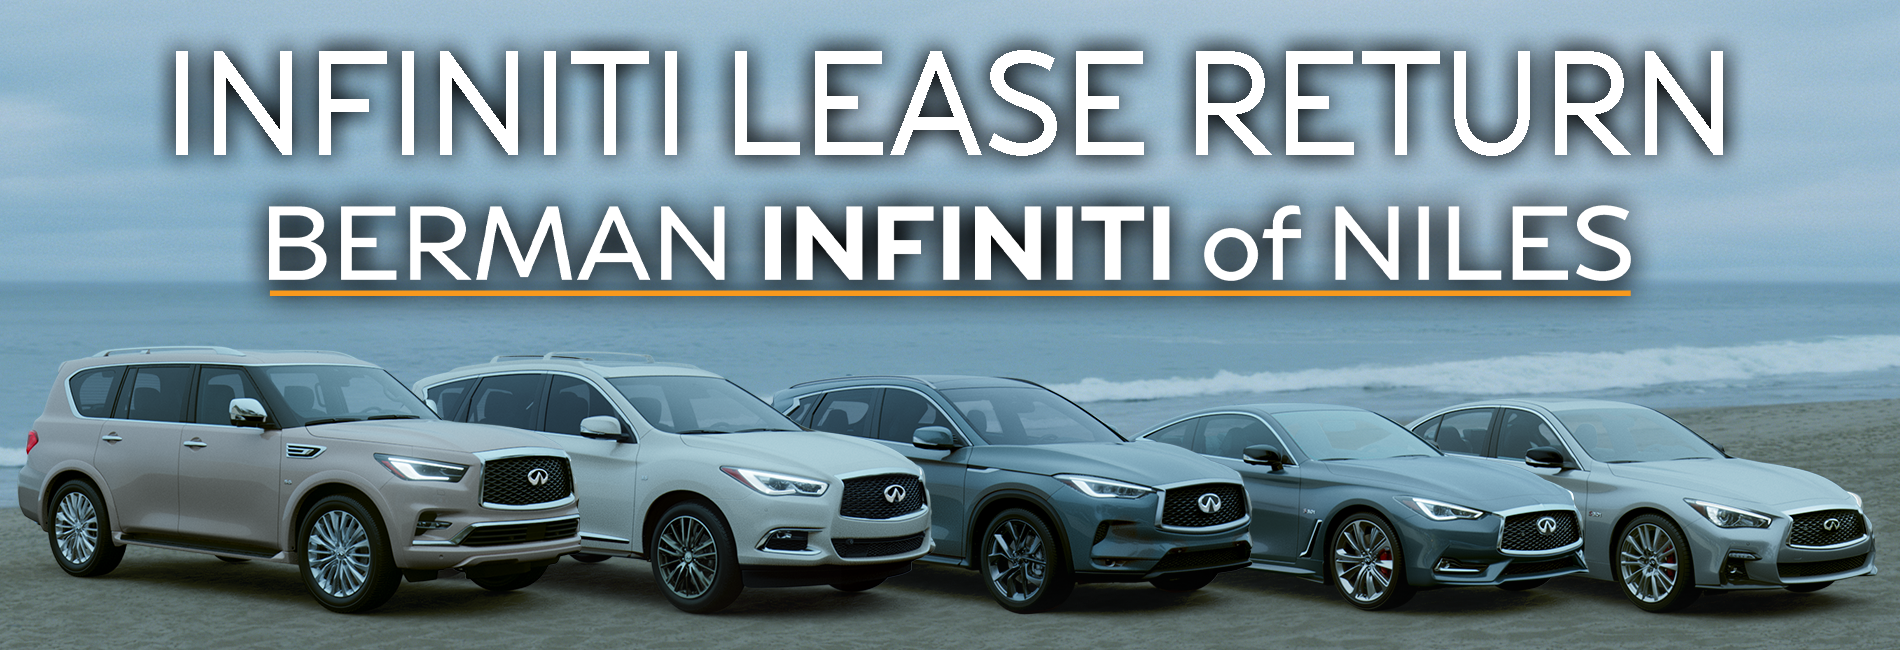 INFINITI Lease Return at Berman INFINITI of Niles